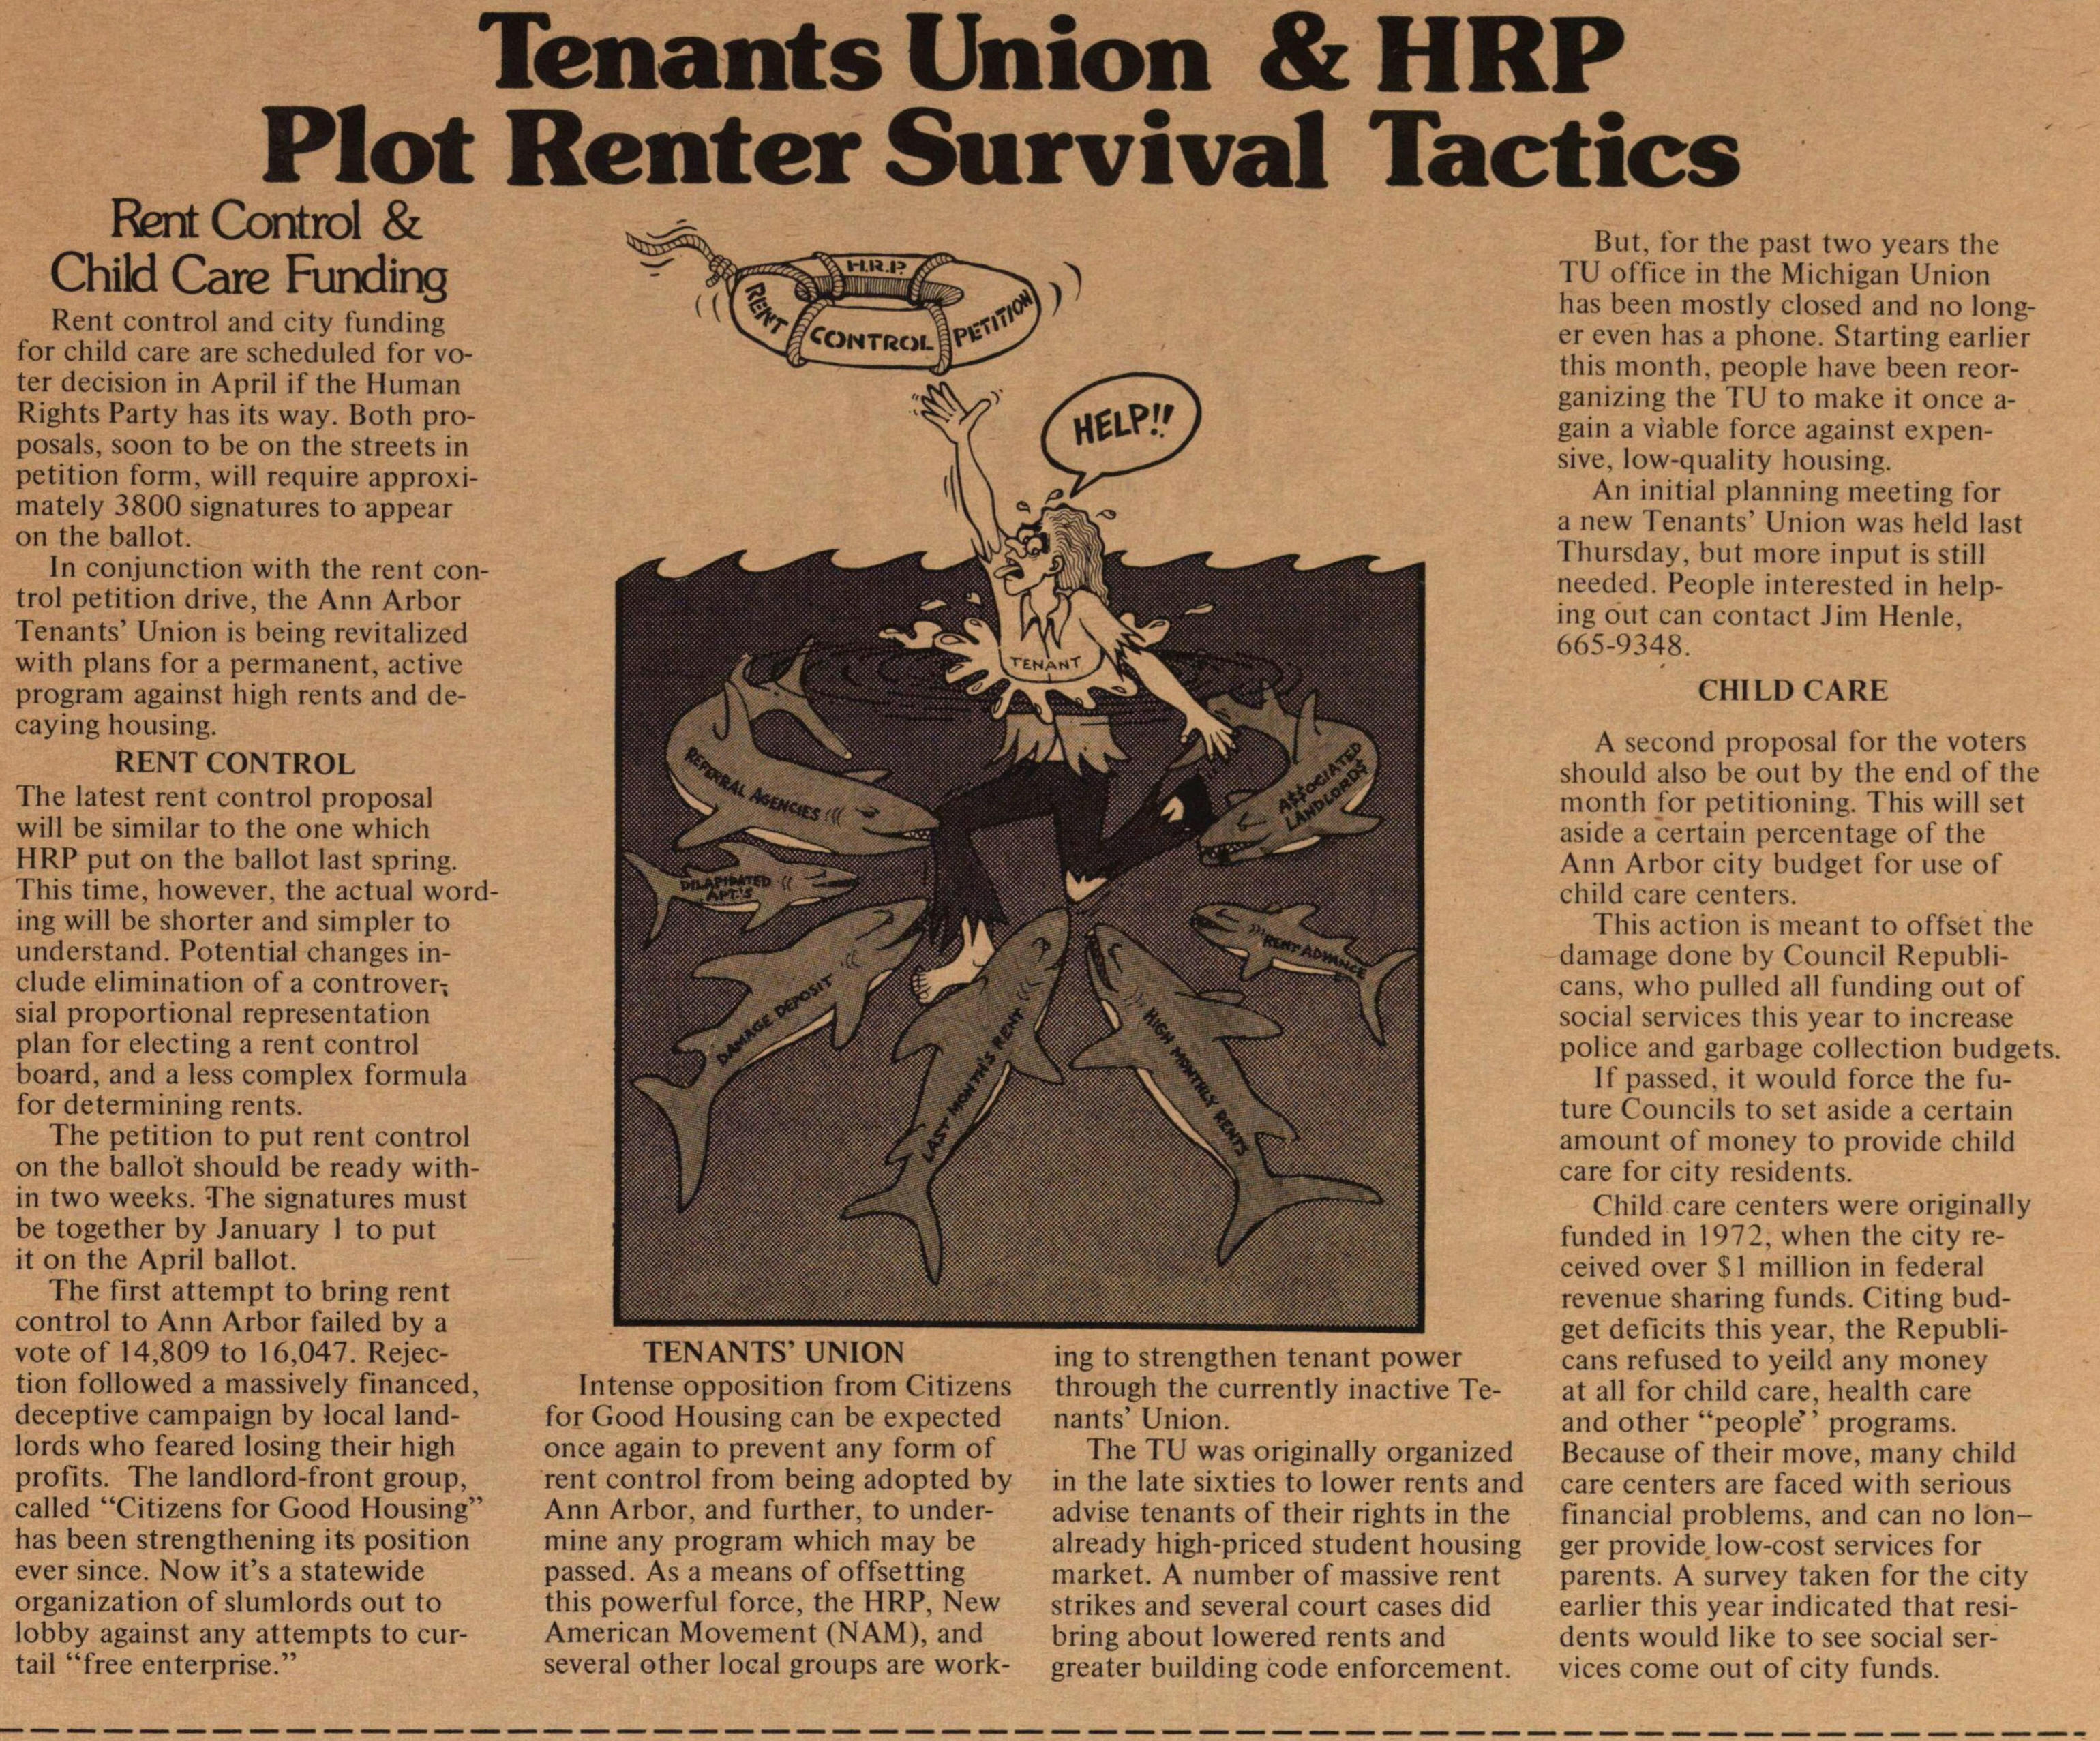 Tenants Union & Hrp Plot Renter Survival Tactics image